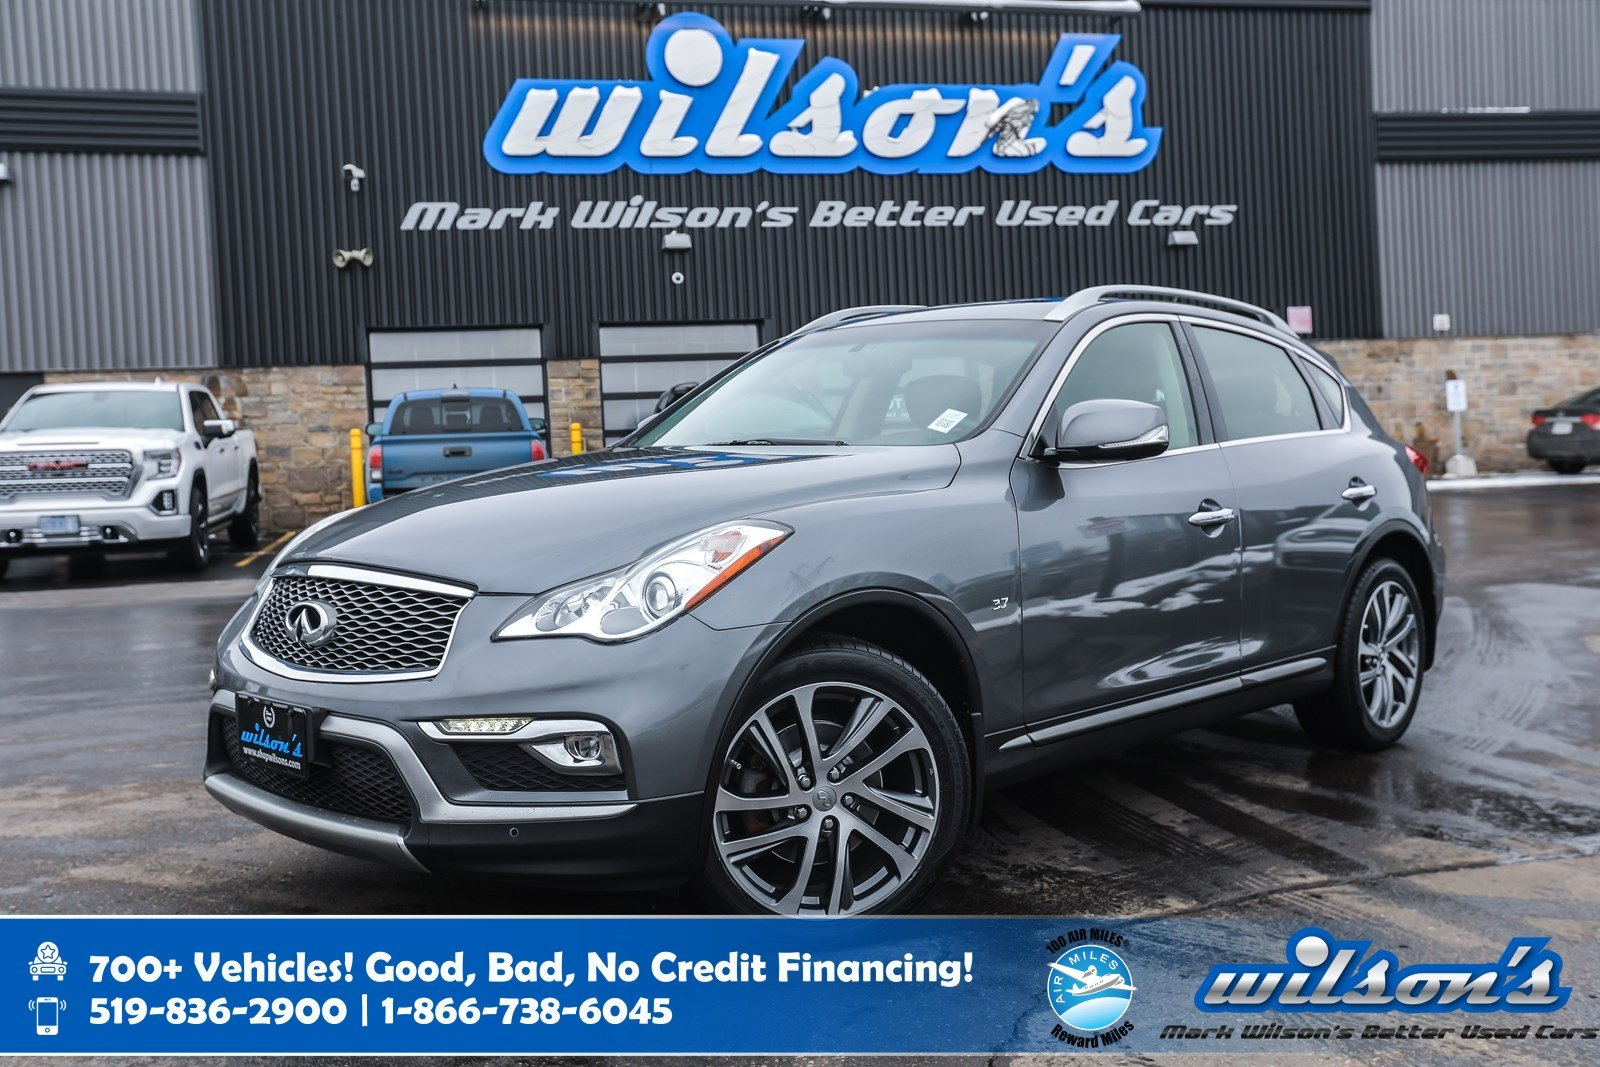 Certified Pre-Owned 2017 INFINITI QX50 AWD, Leather, Navigation, Sunroof, 360 Camera, Heated Seats, Bose Audio, Intelligent Key and more!